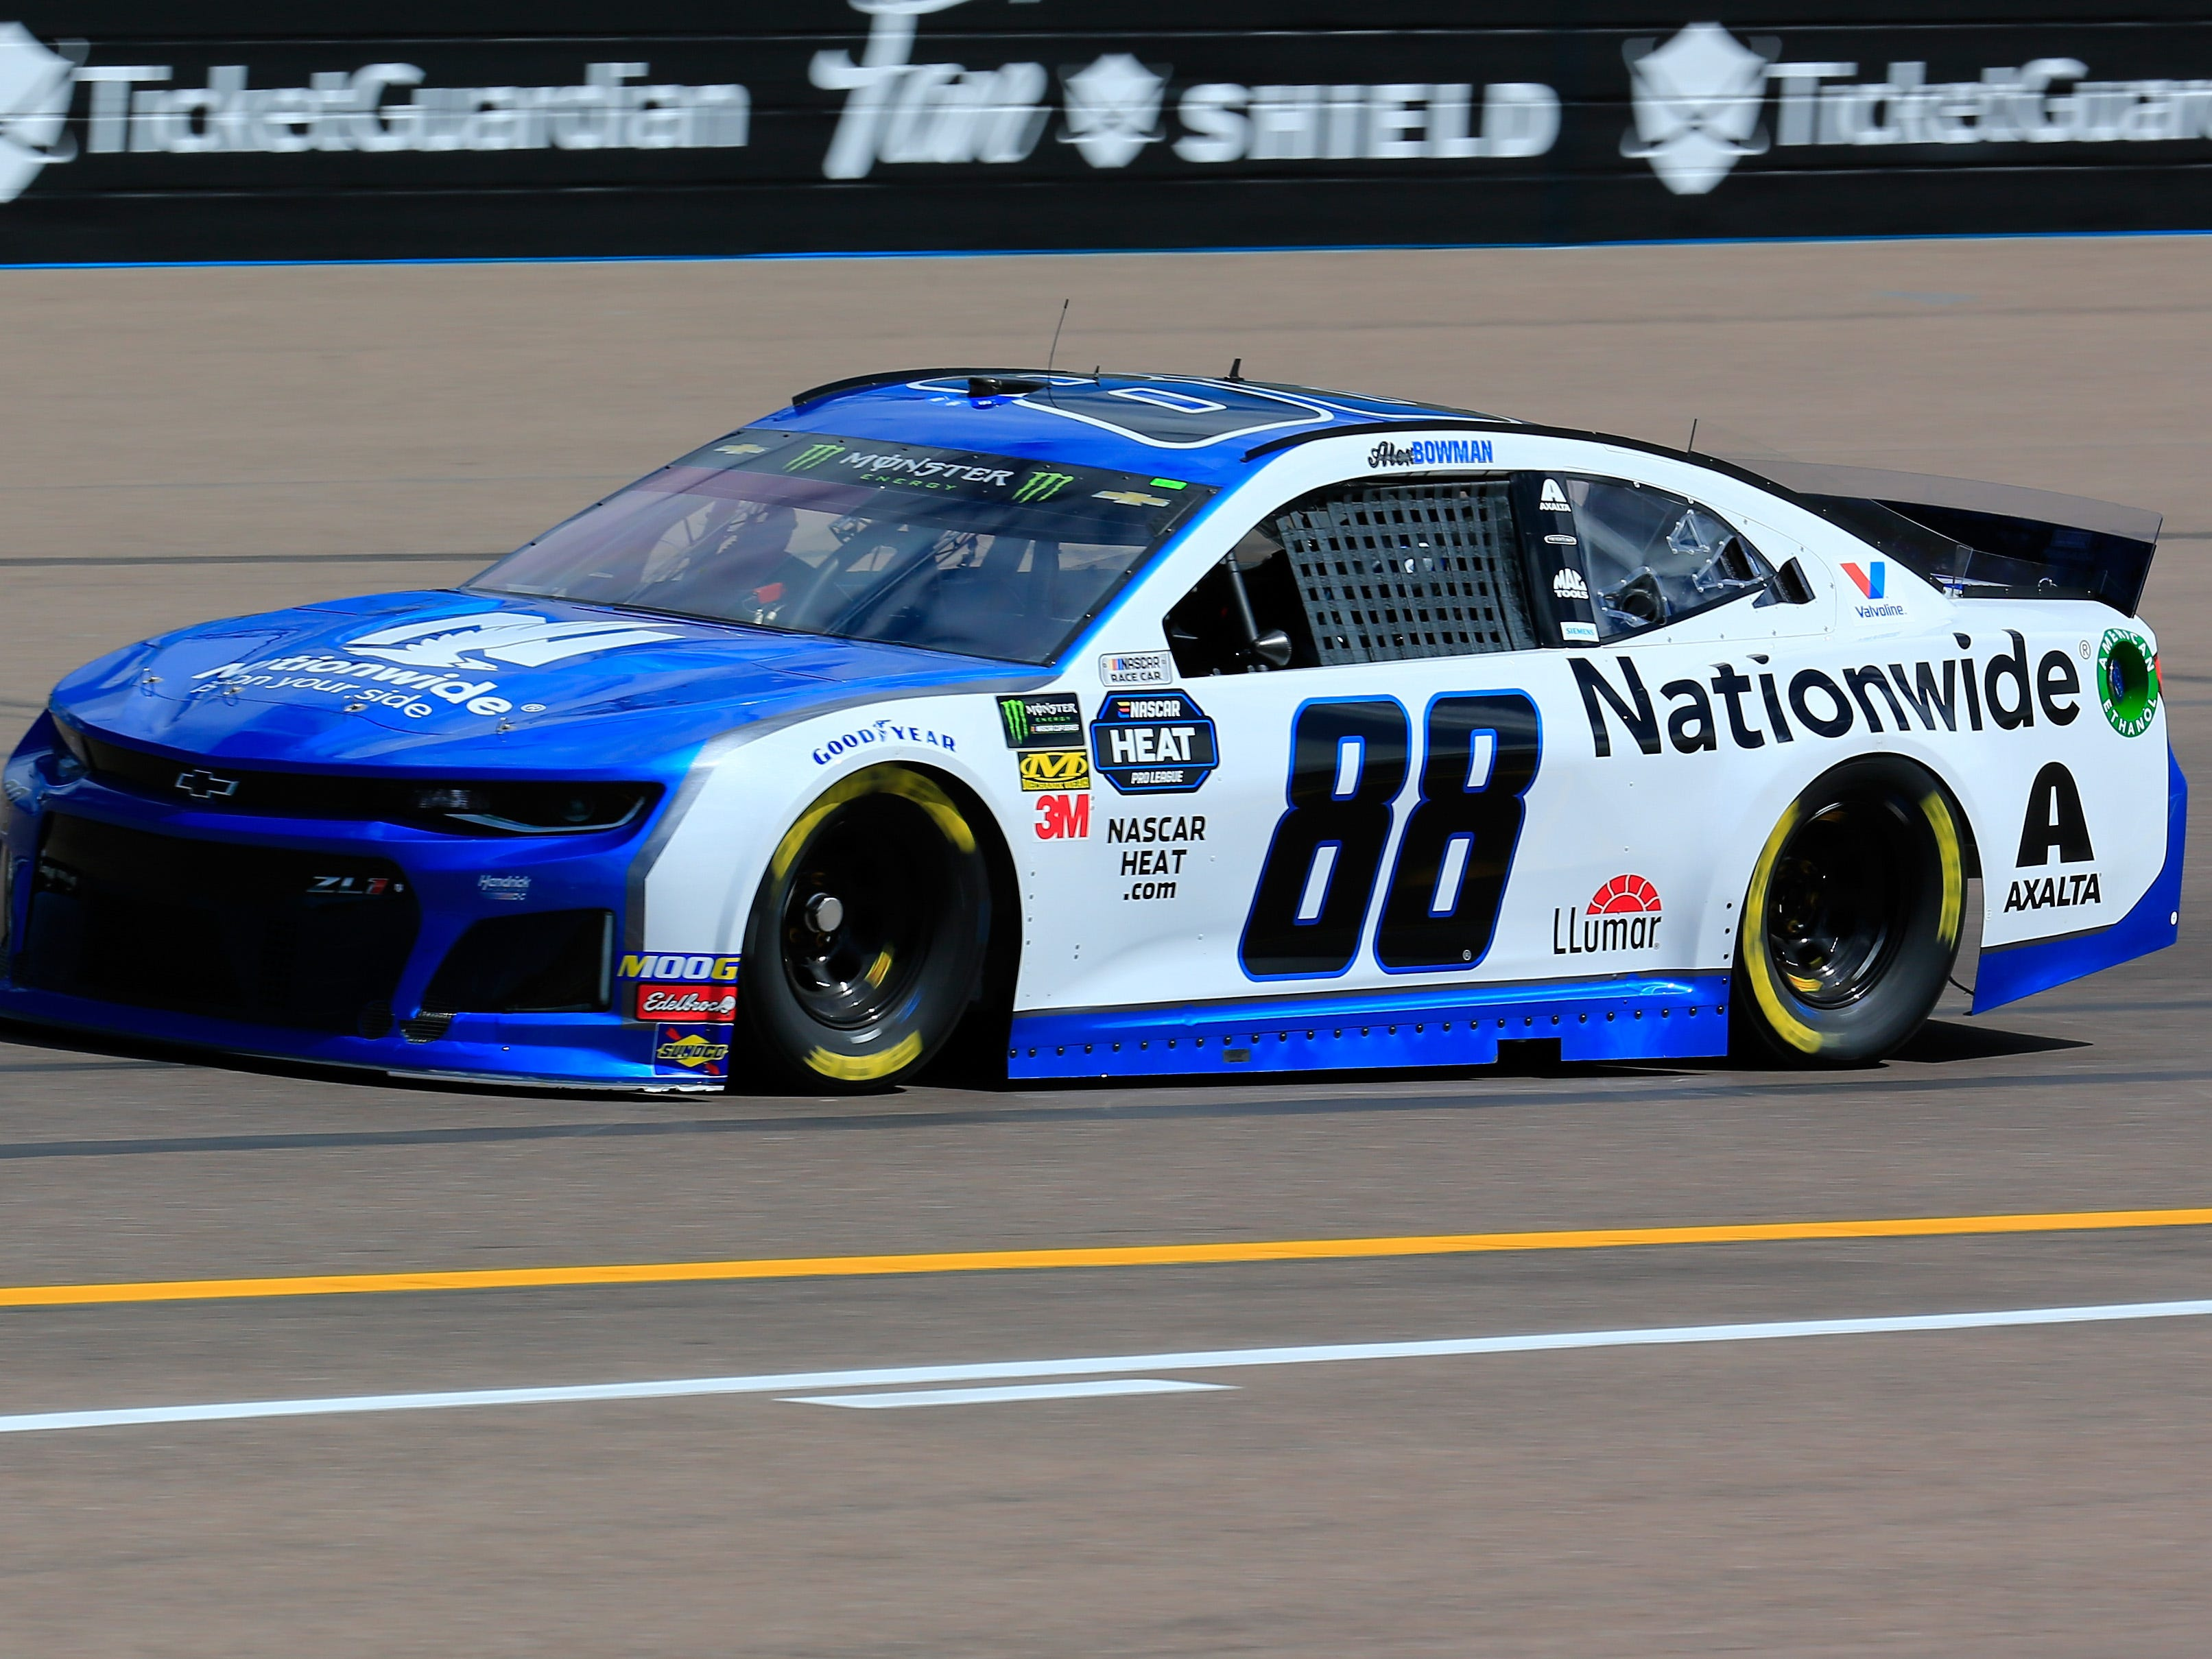 AVONDALE, AZ - MARCH 08: Alex Bowman, driver of the #88 Nationwide Chevrolet, practices for the Monster Energy NASCAR Cup Series TicketGuardian 500 at ISM Raceway on March 8, 2019 in Avondale, Arizona.